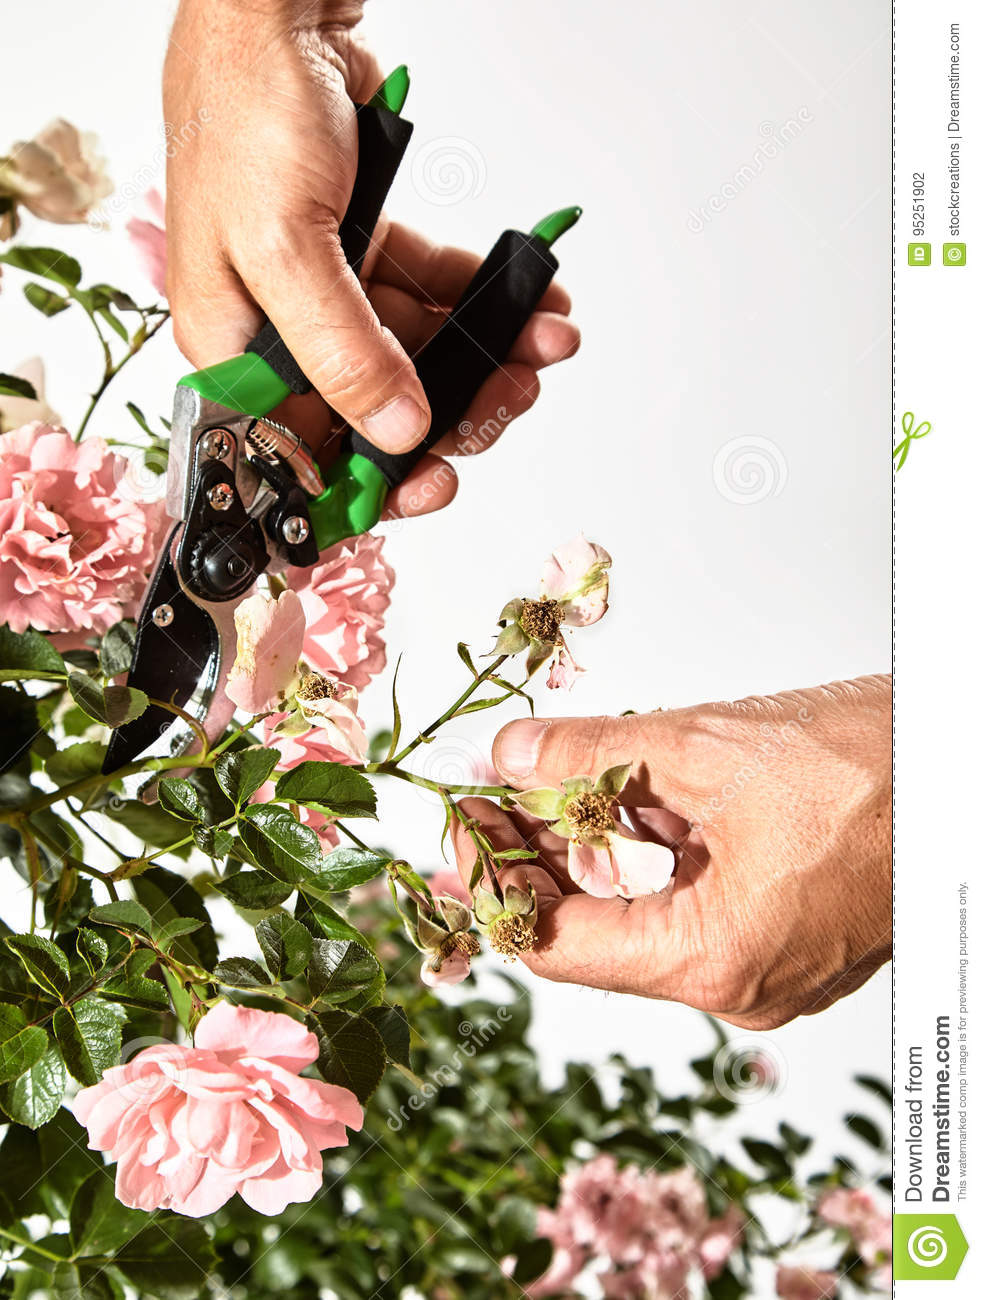 Gardener Pruning A Rose Bush With Secateurs Stock Photo Image Of